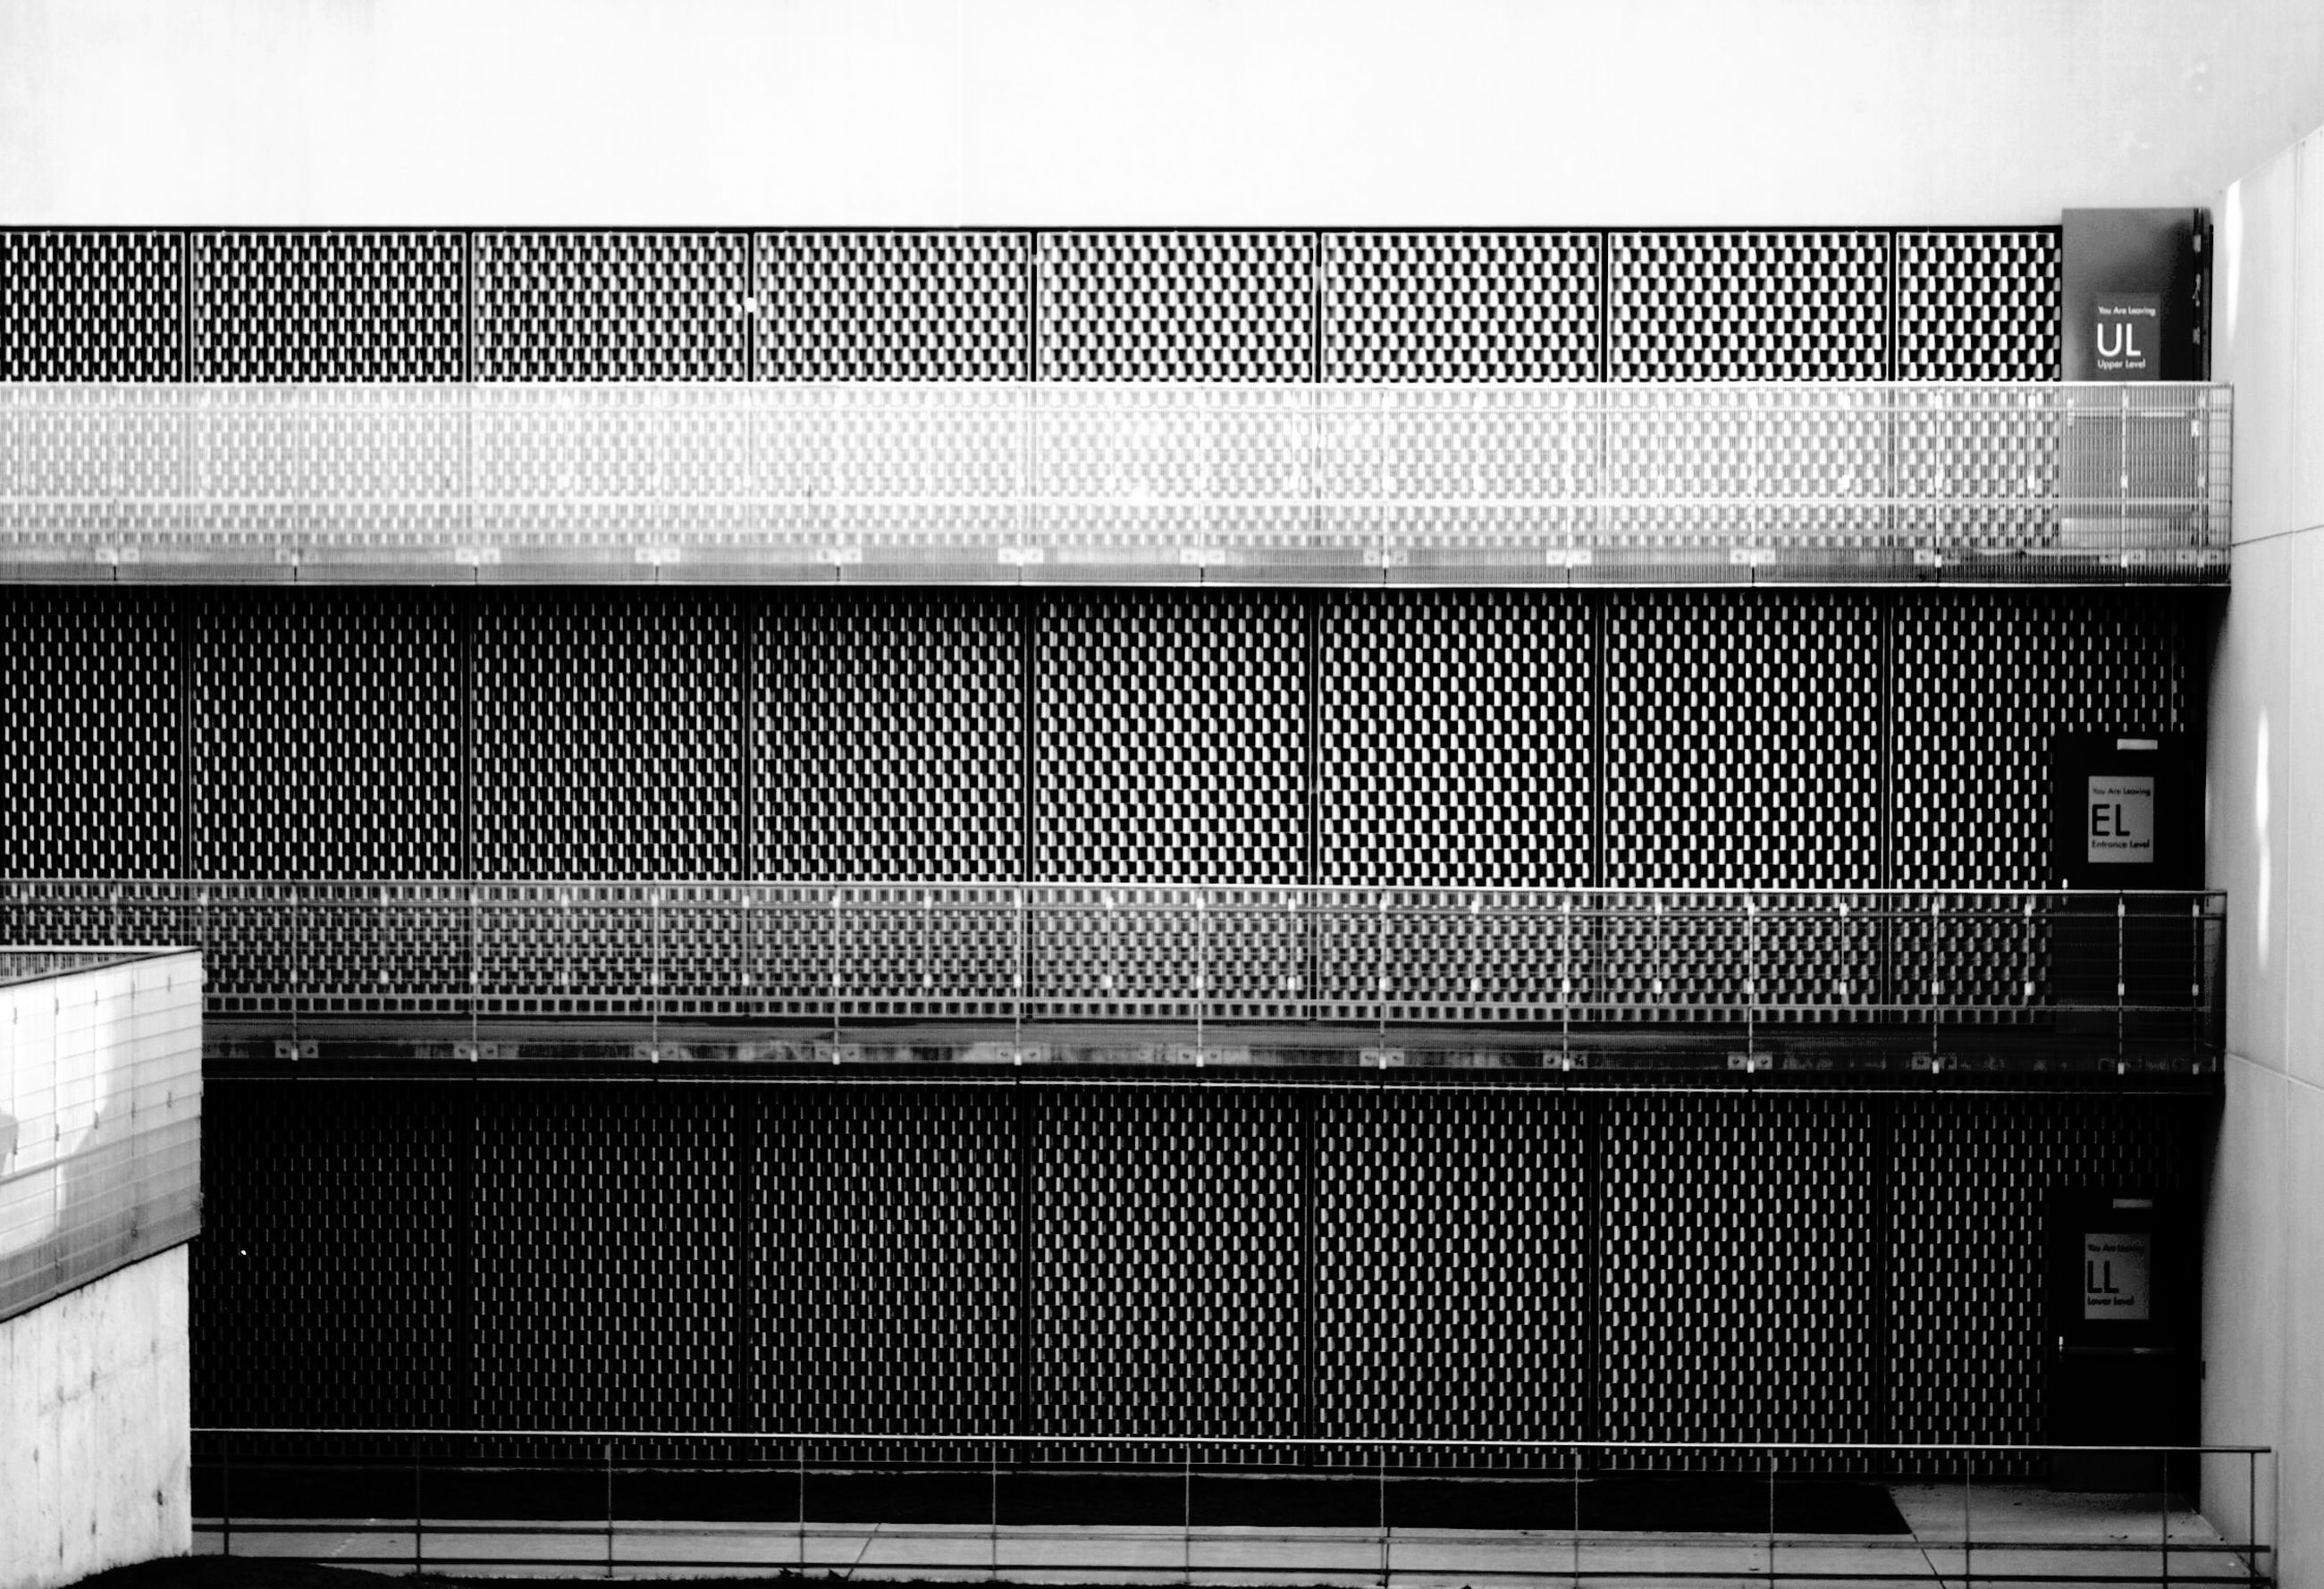 architecture, built structure, building exterior, pattern, wall - building feature, metal, railing, window, closed, building, no people, wall, protection, safety, day, security, full frame, repetition, outdoors, residential structure